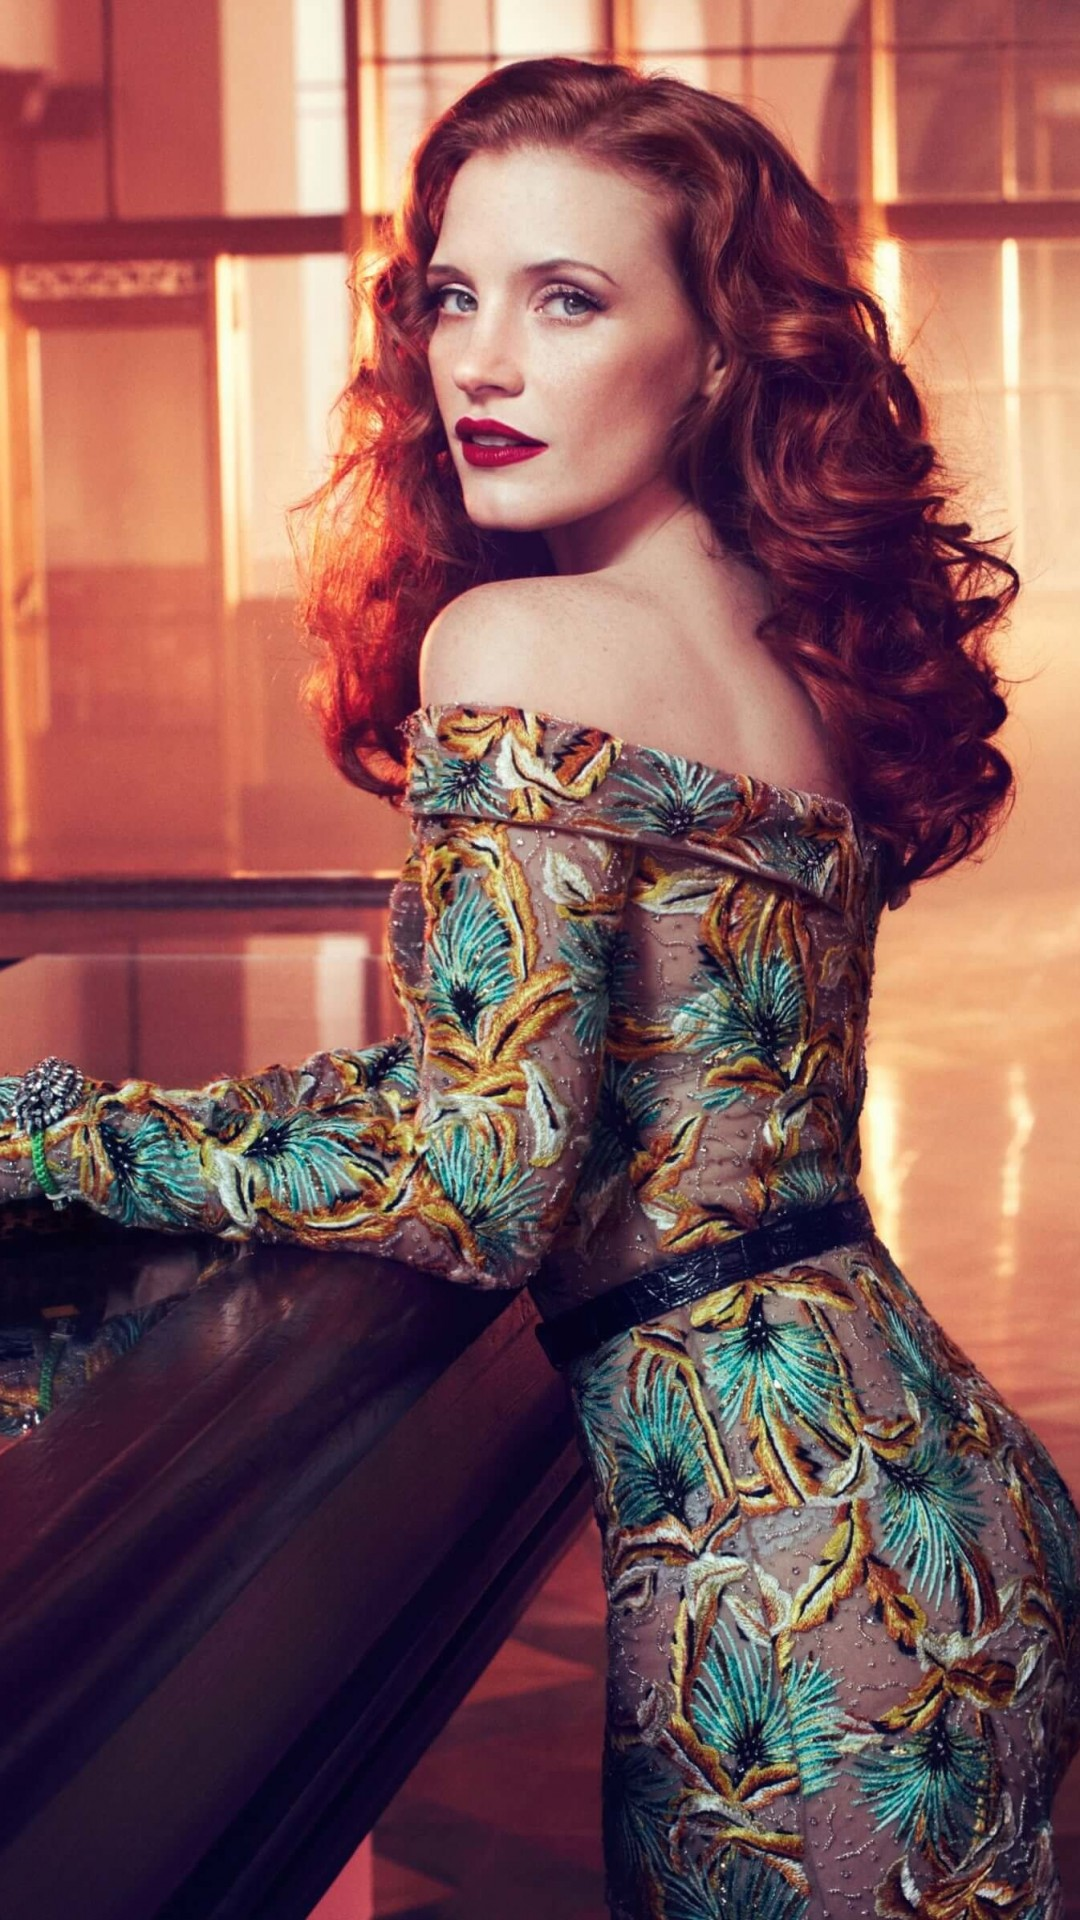 Jessica Chastain Wallpaper for SAMSUNG Galaxy S5